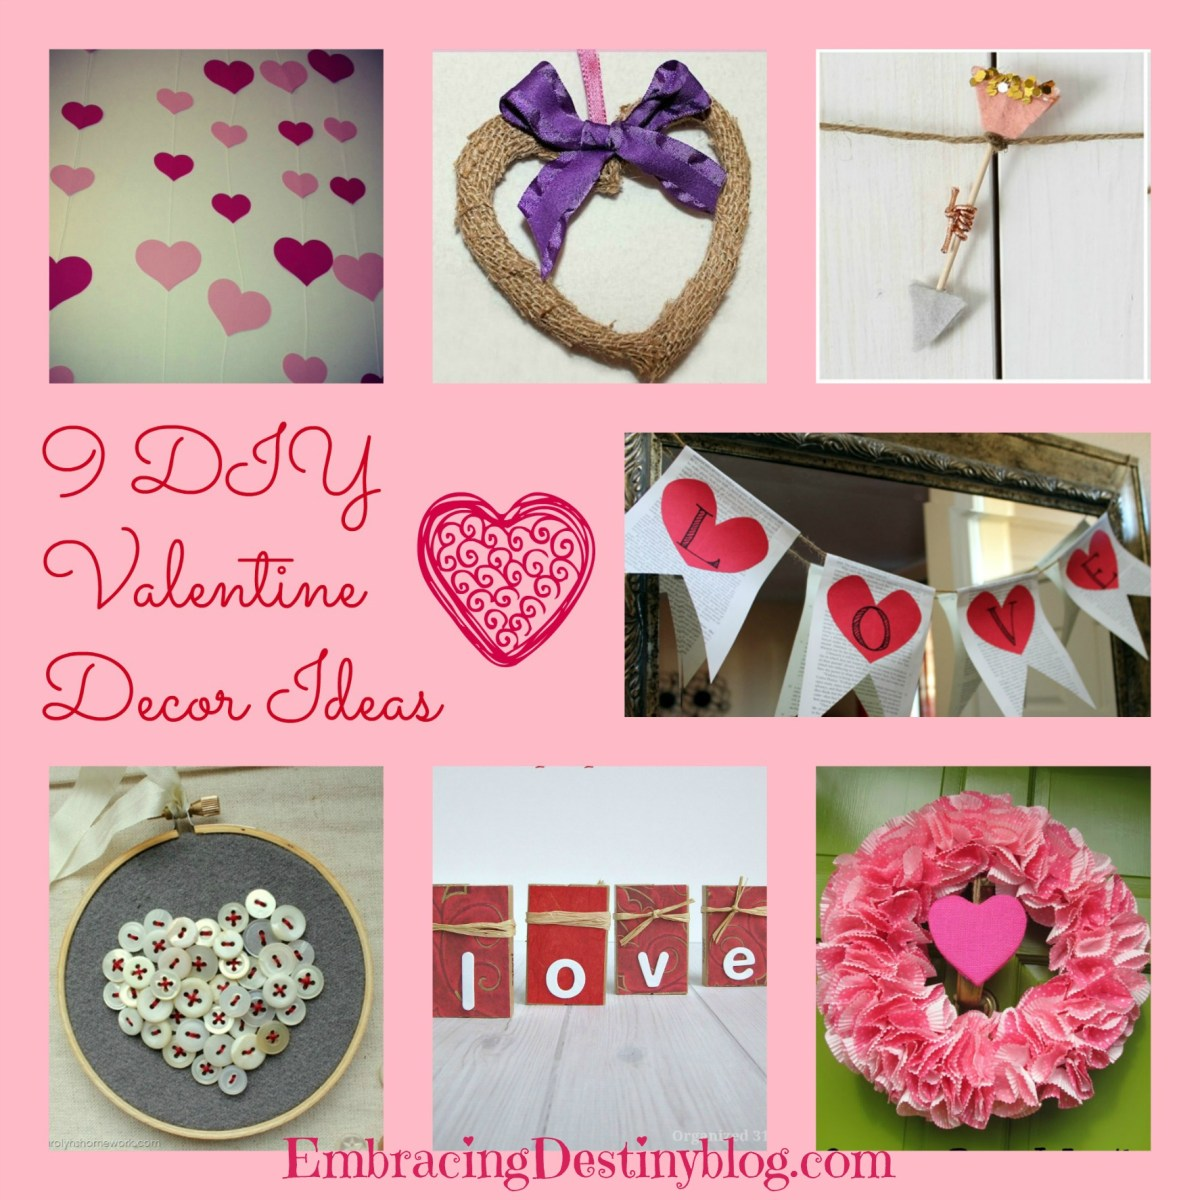 9 DIY Valentine Decor Ideas